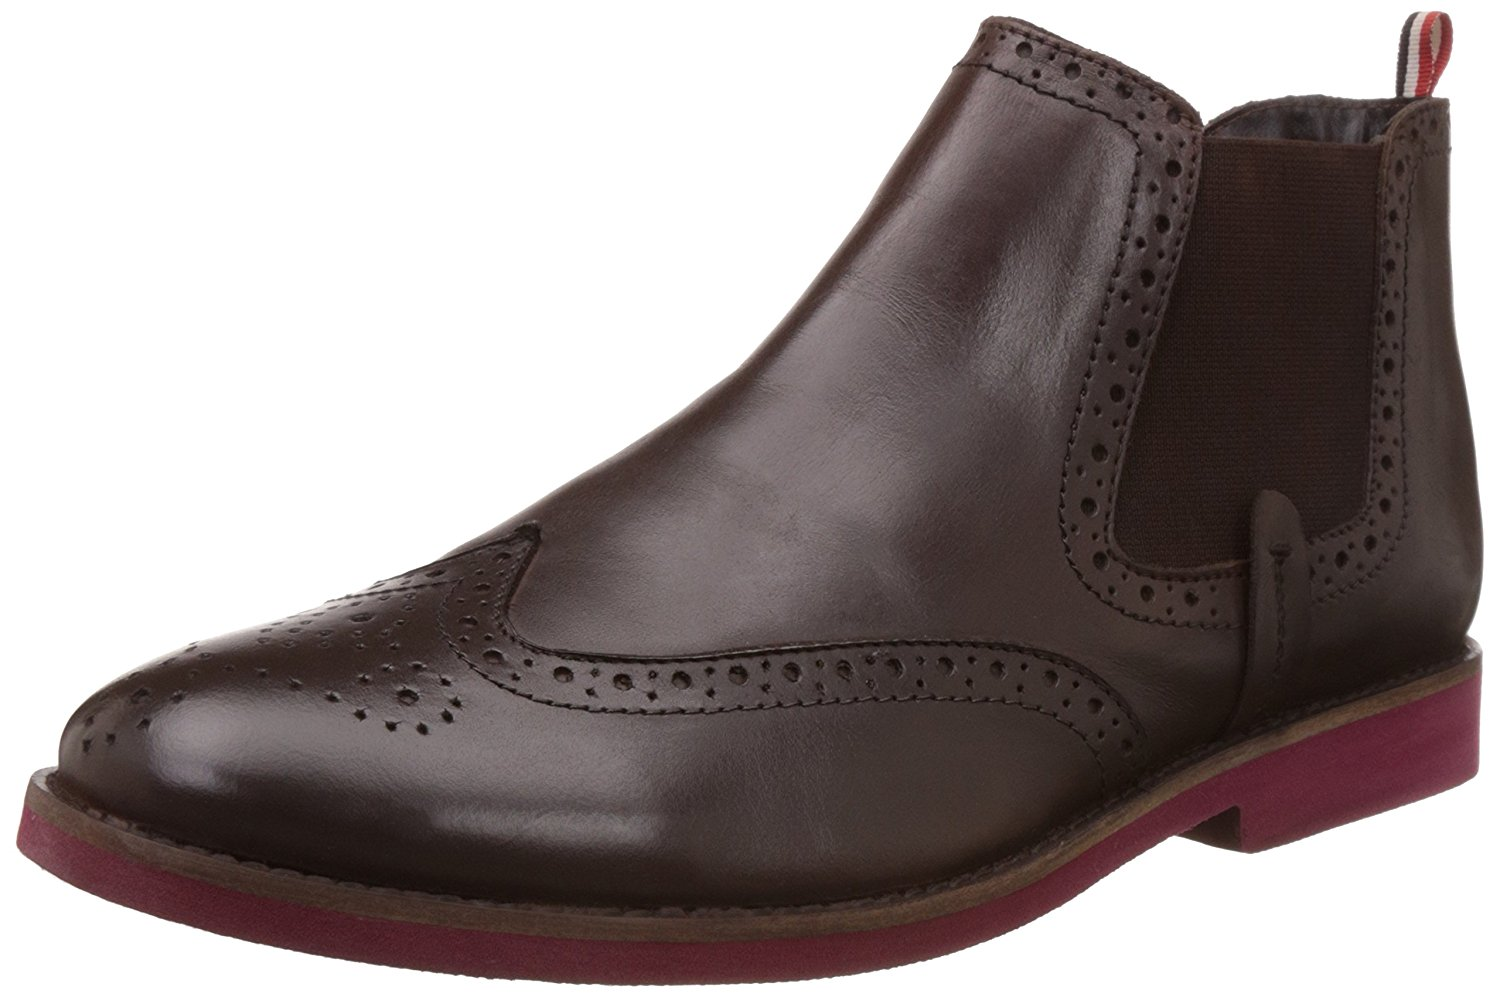 Bata Men's Affleck Leather Boots- Amazon